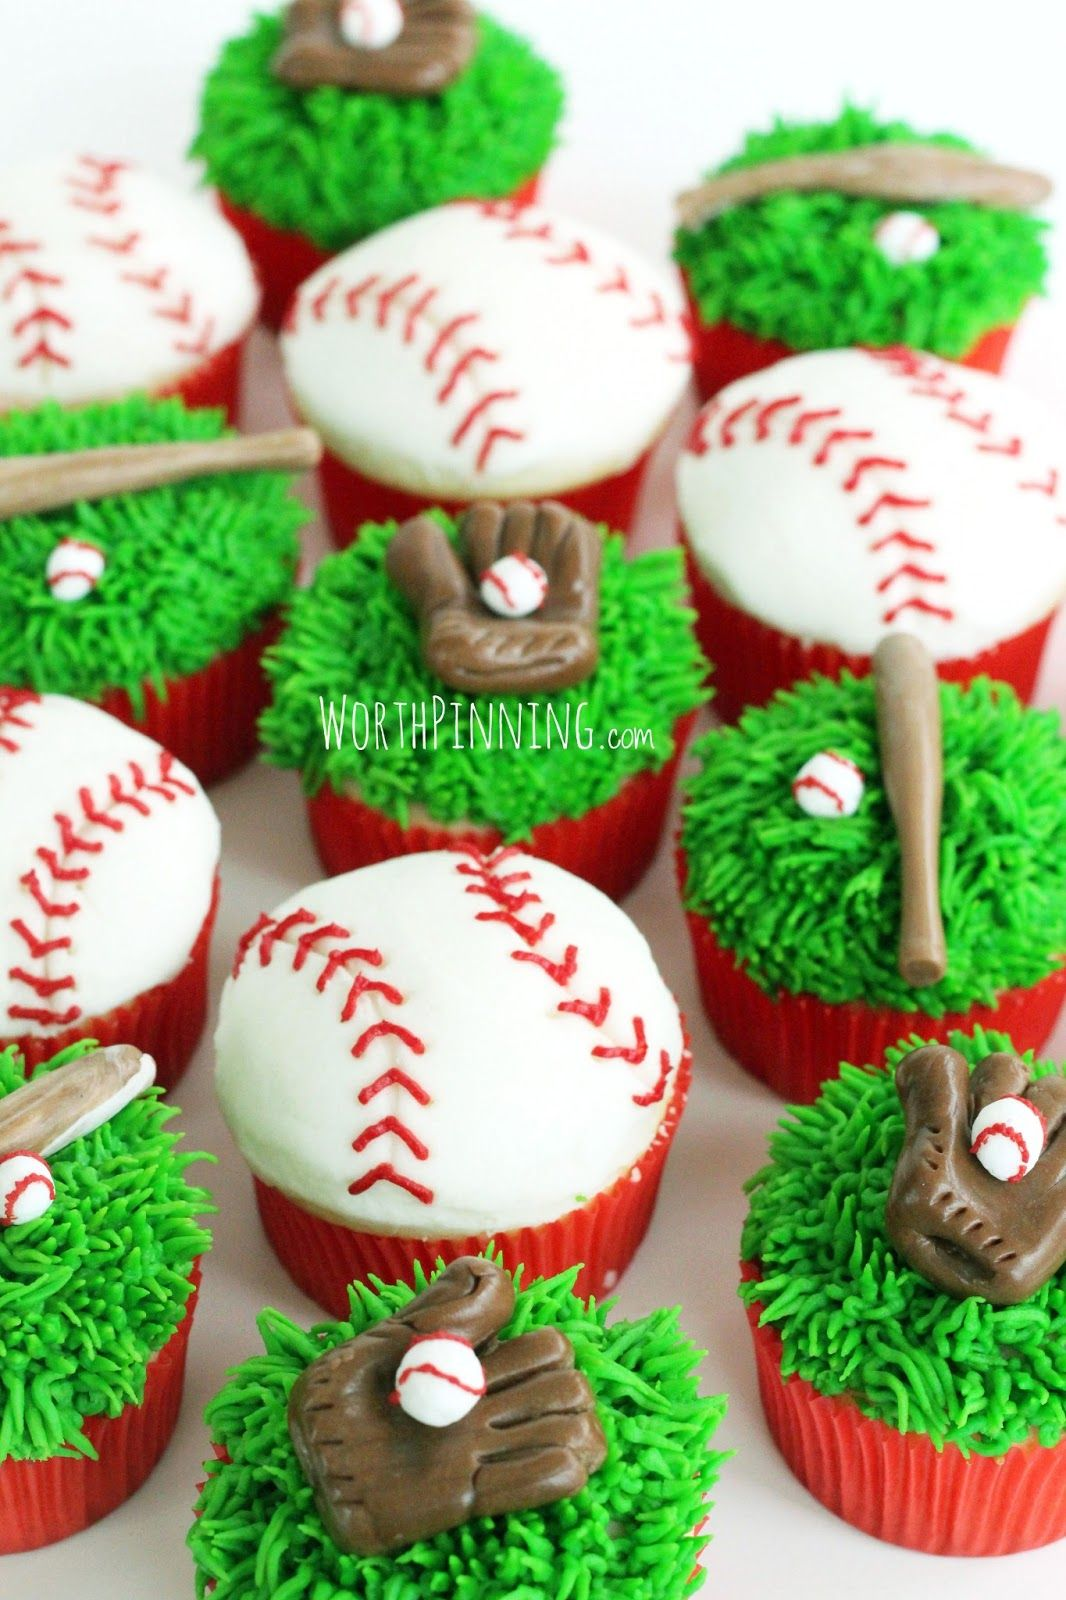 How to Decorate BaseballThemed Cupcakes forecast